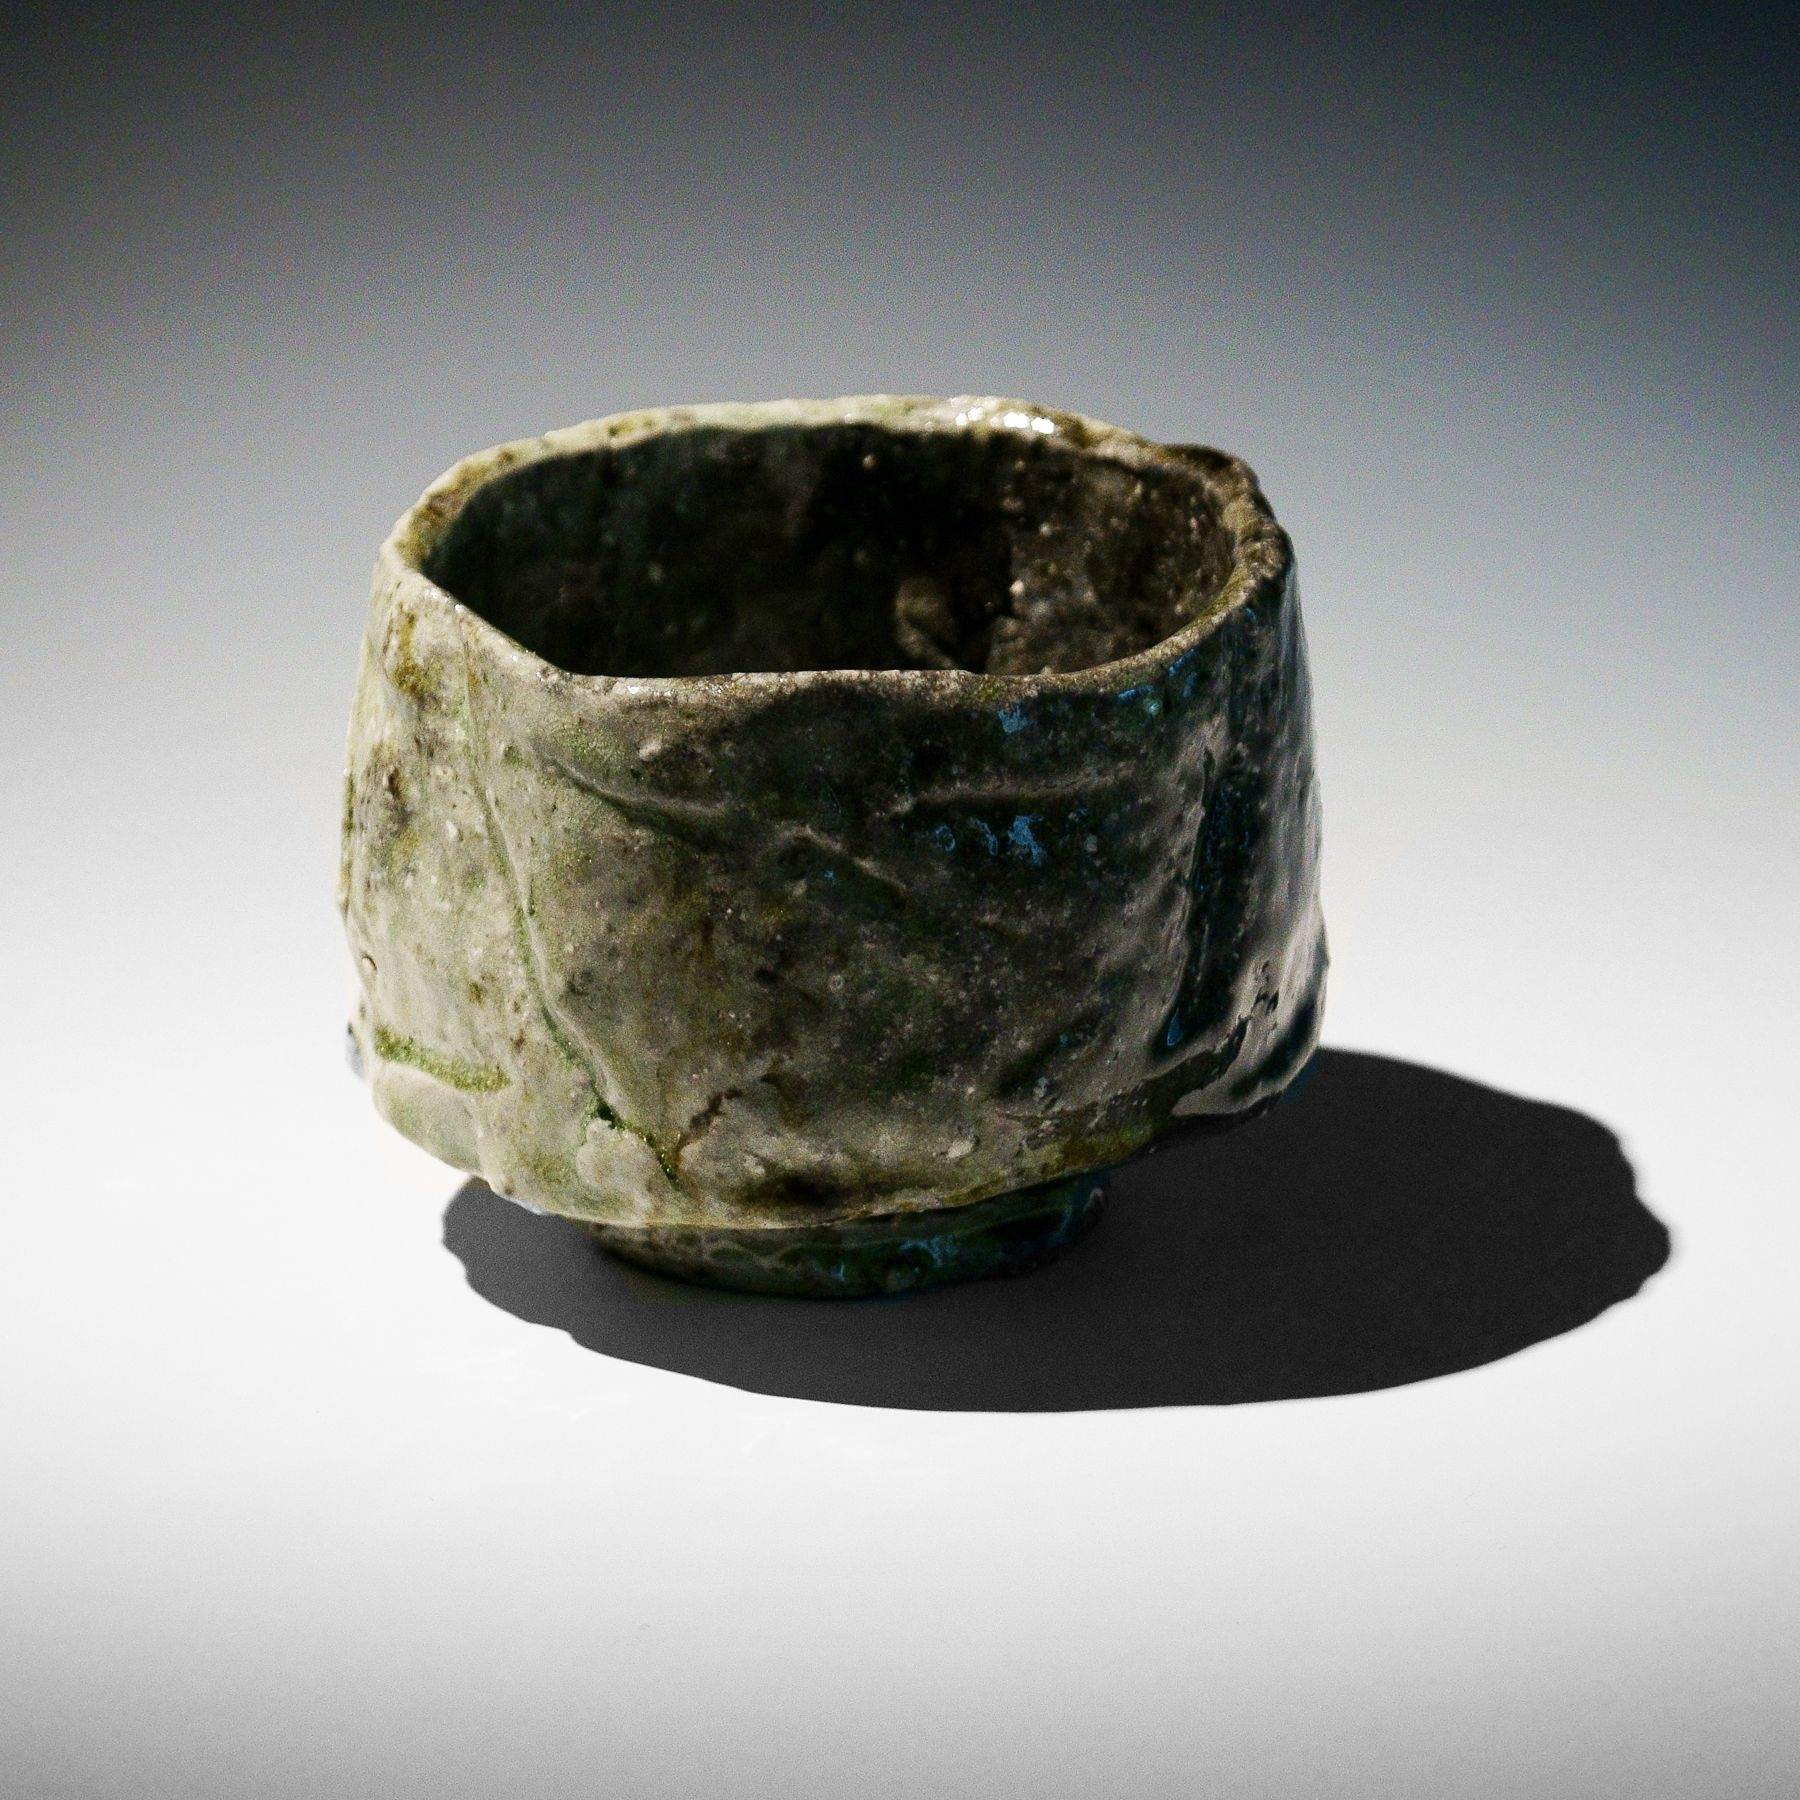 Tanimoto Kei (b. 1948), Iga-glazed, straight-sided teabowl